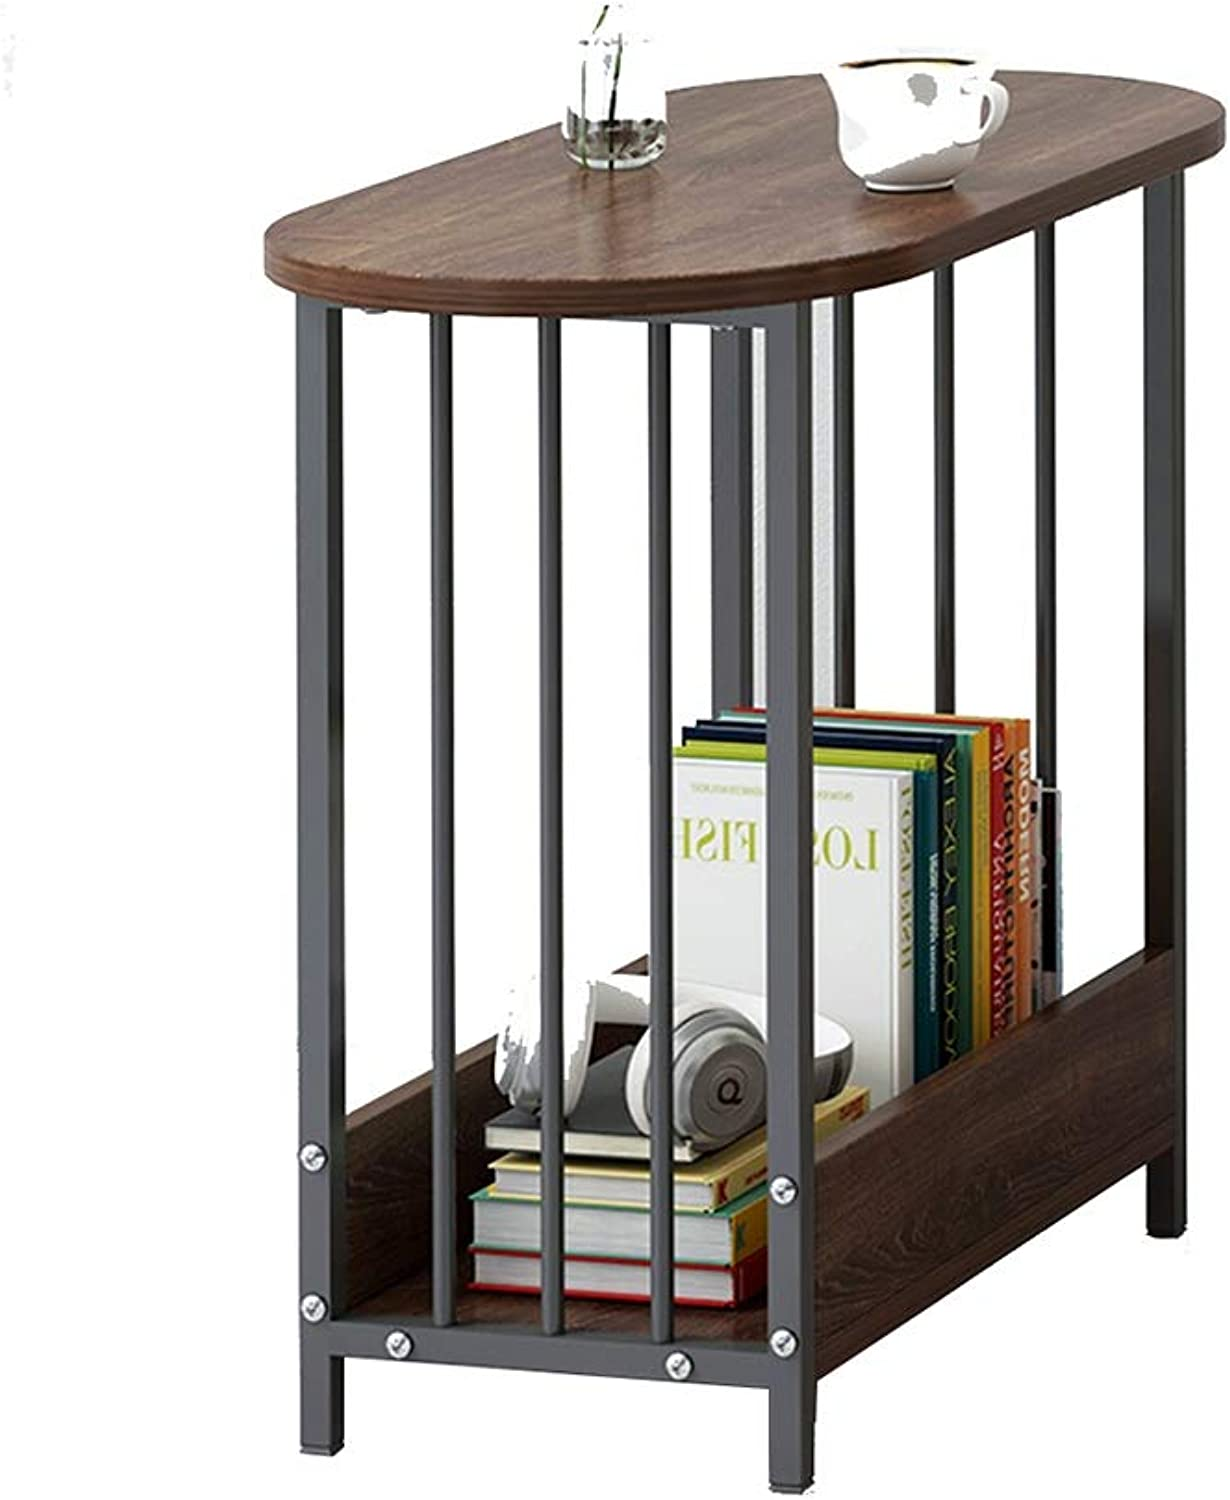 Xiaolin 2 Tier Sofa Side Table,Wood Telephone Coffee Dining Table Storage Rack Assemble 23.6 X 11.4 X 20.4 (color   C)